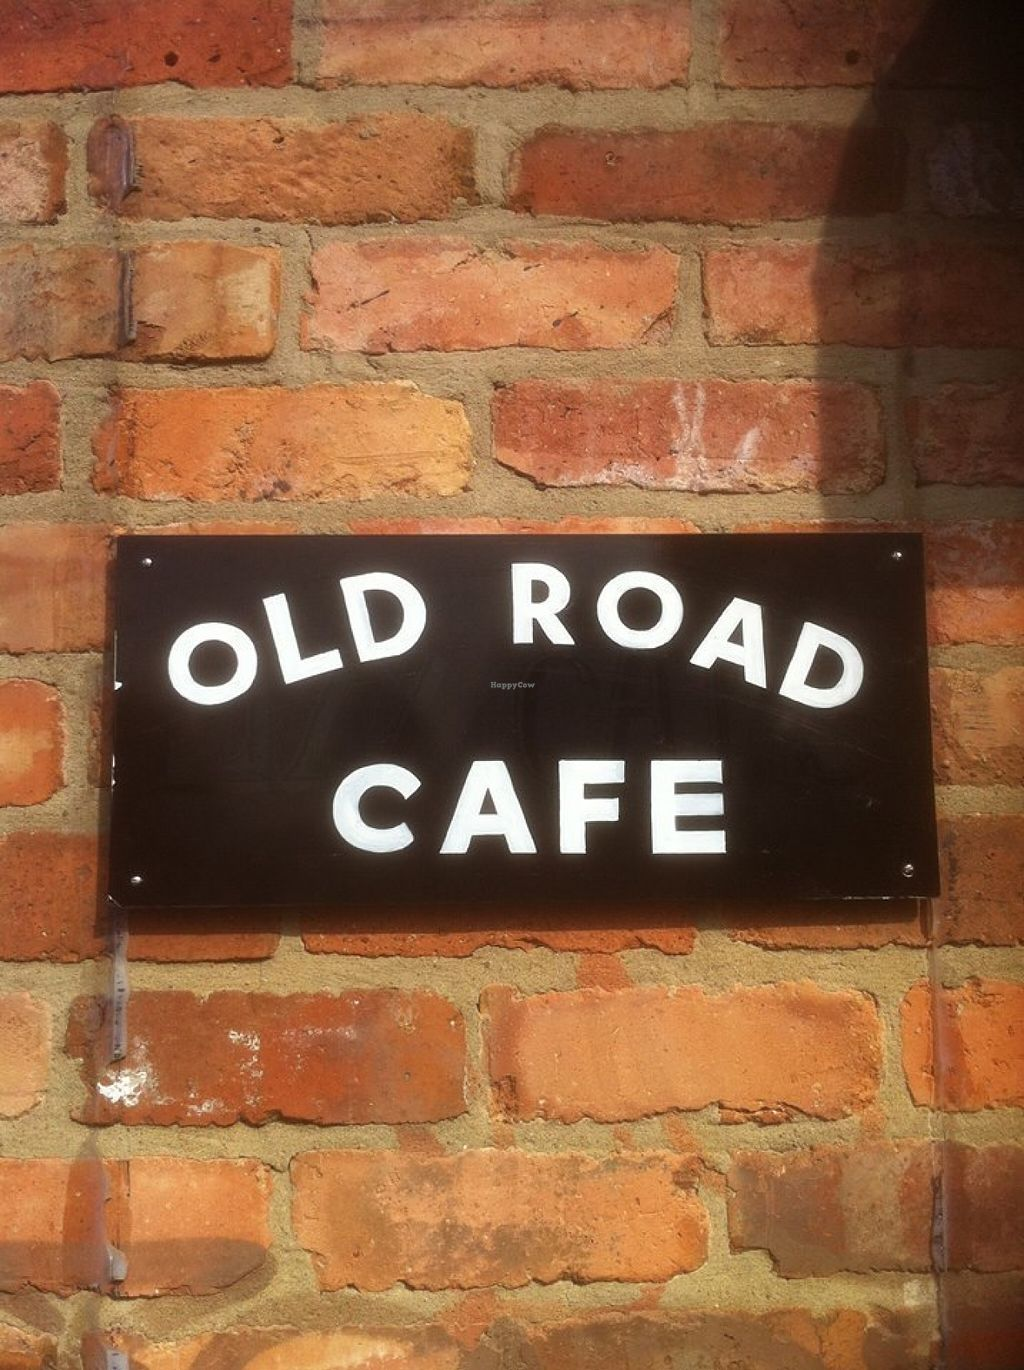 """Photo of Old Road Cafe  by <a href=""""/members/profile/Meaks"""">Meaks</a> <br/>Old Road Cafe <br/> July 30, 2016  - <a href='/contact/abuse/image/67101/163564'>Report</a>"""